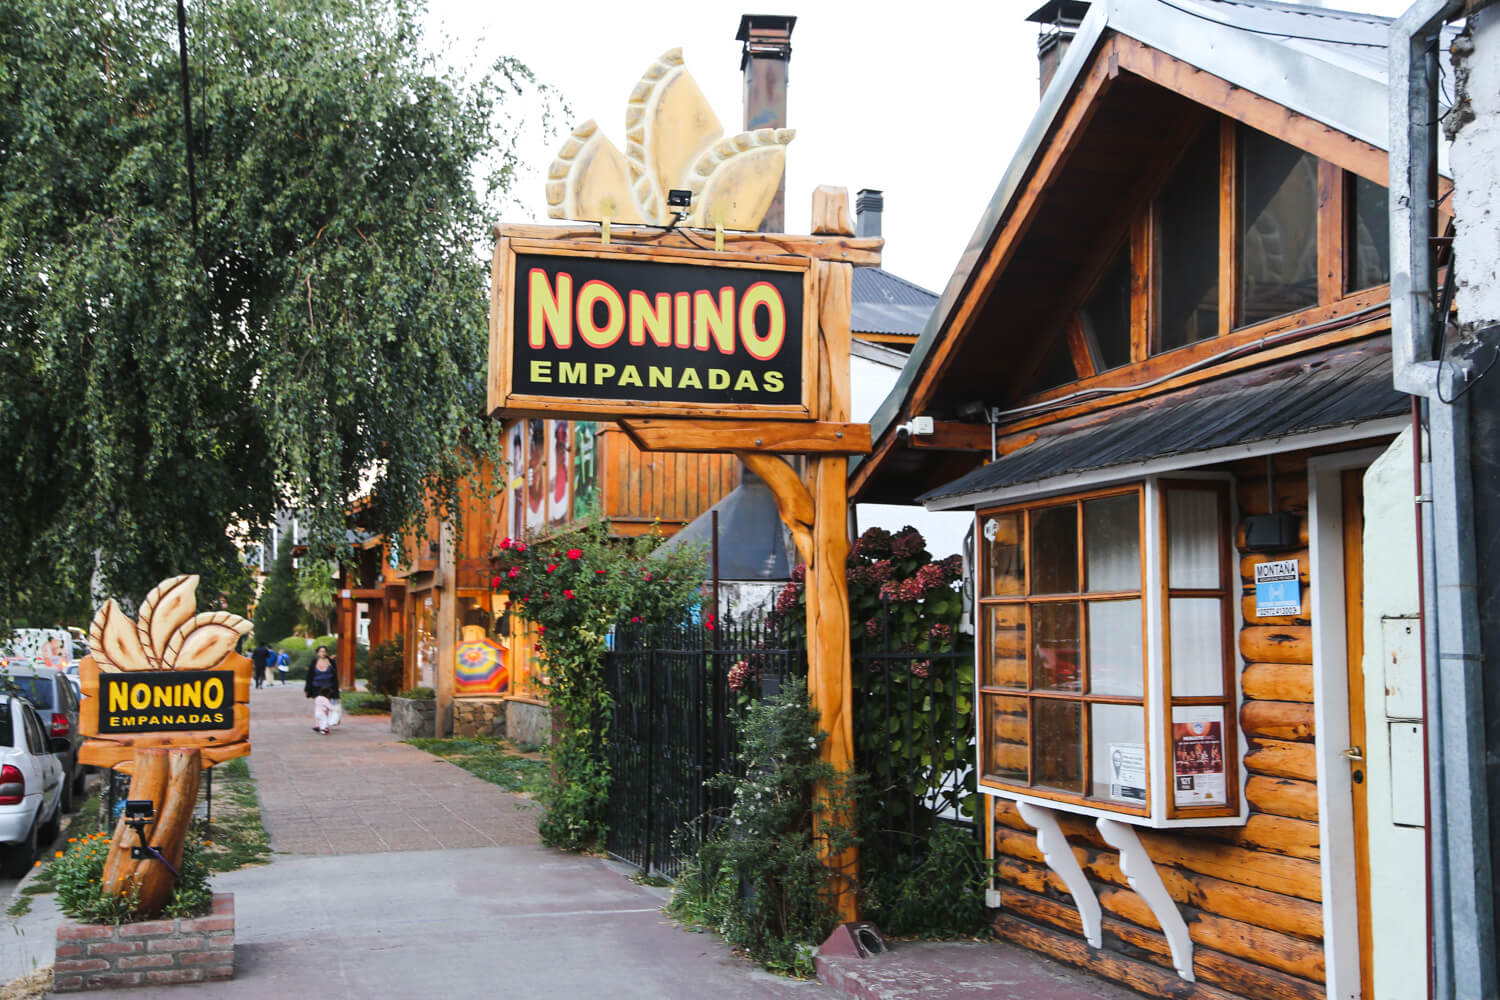 A restaurant in a log cabin is next to a sidewalk in downtown san martin de los andes argentina